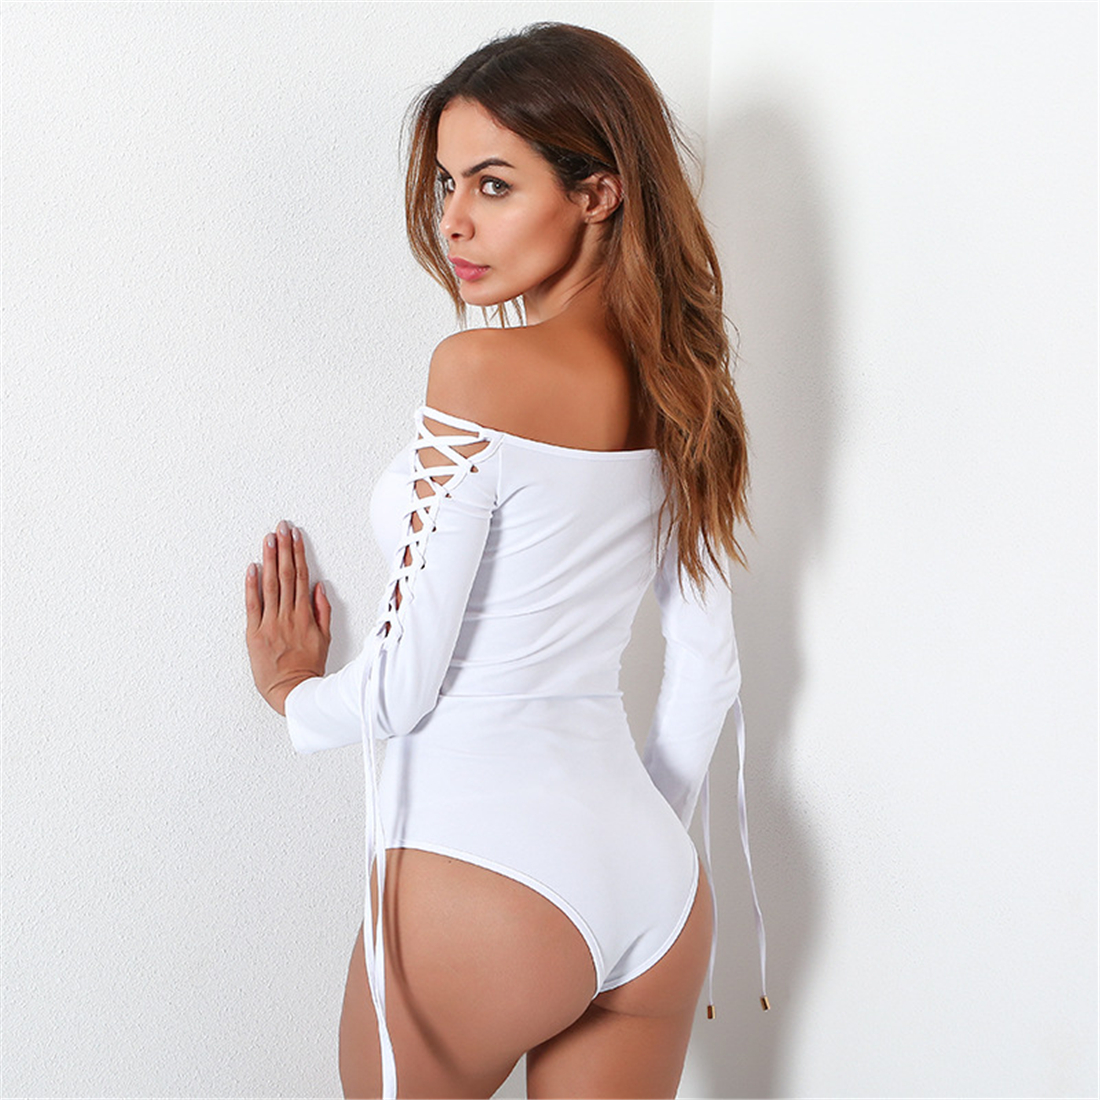 YJSFG HOUSE Solid Black White Slash Neck Hollow Out Bodysuit Women Long Sleeve Lace Up Jumpsuit Rompers Sexy One Piece Catsuit